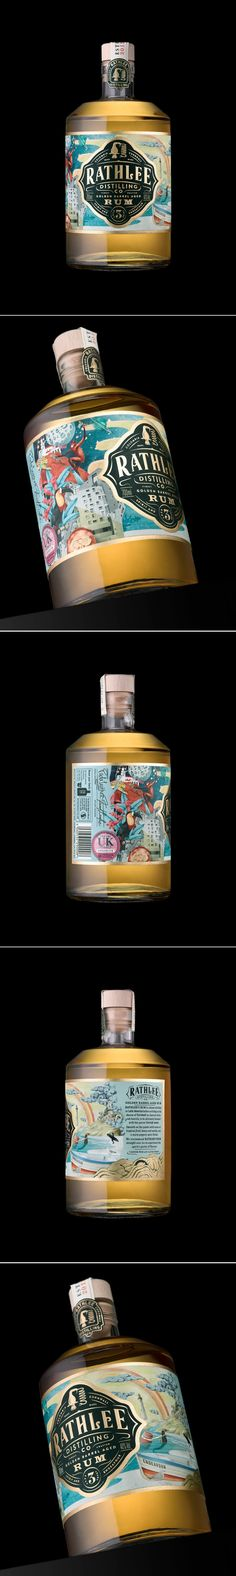 Rathlee Rum Comes With Wonderful Whimsical Illustrations — The Dieline | Packaging & Branding Design & Innovation News